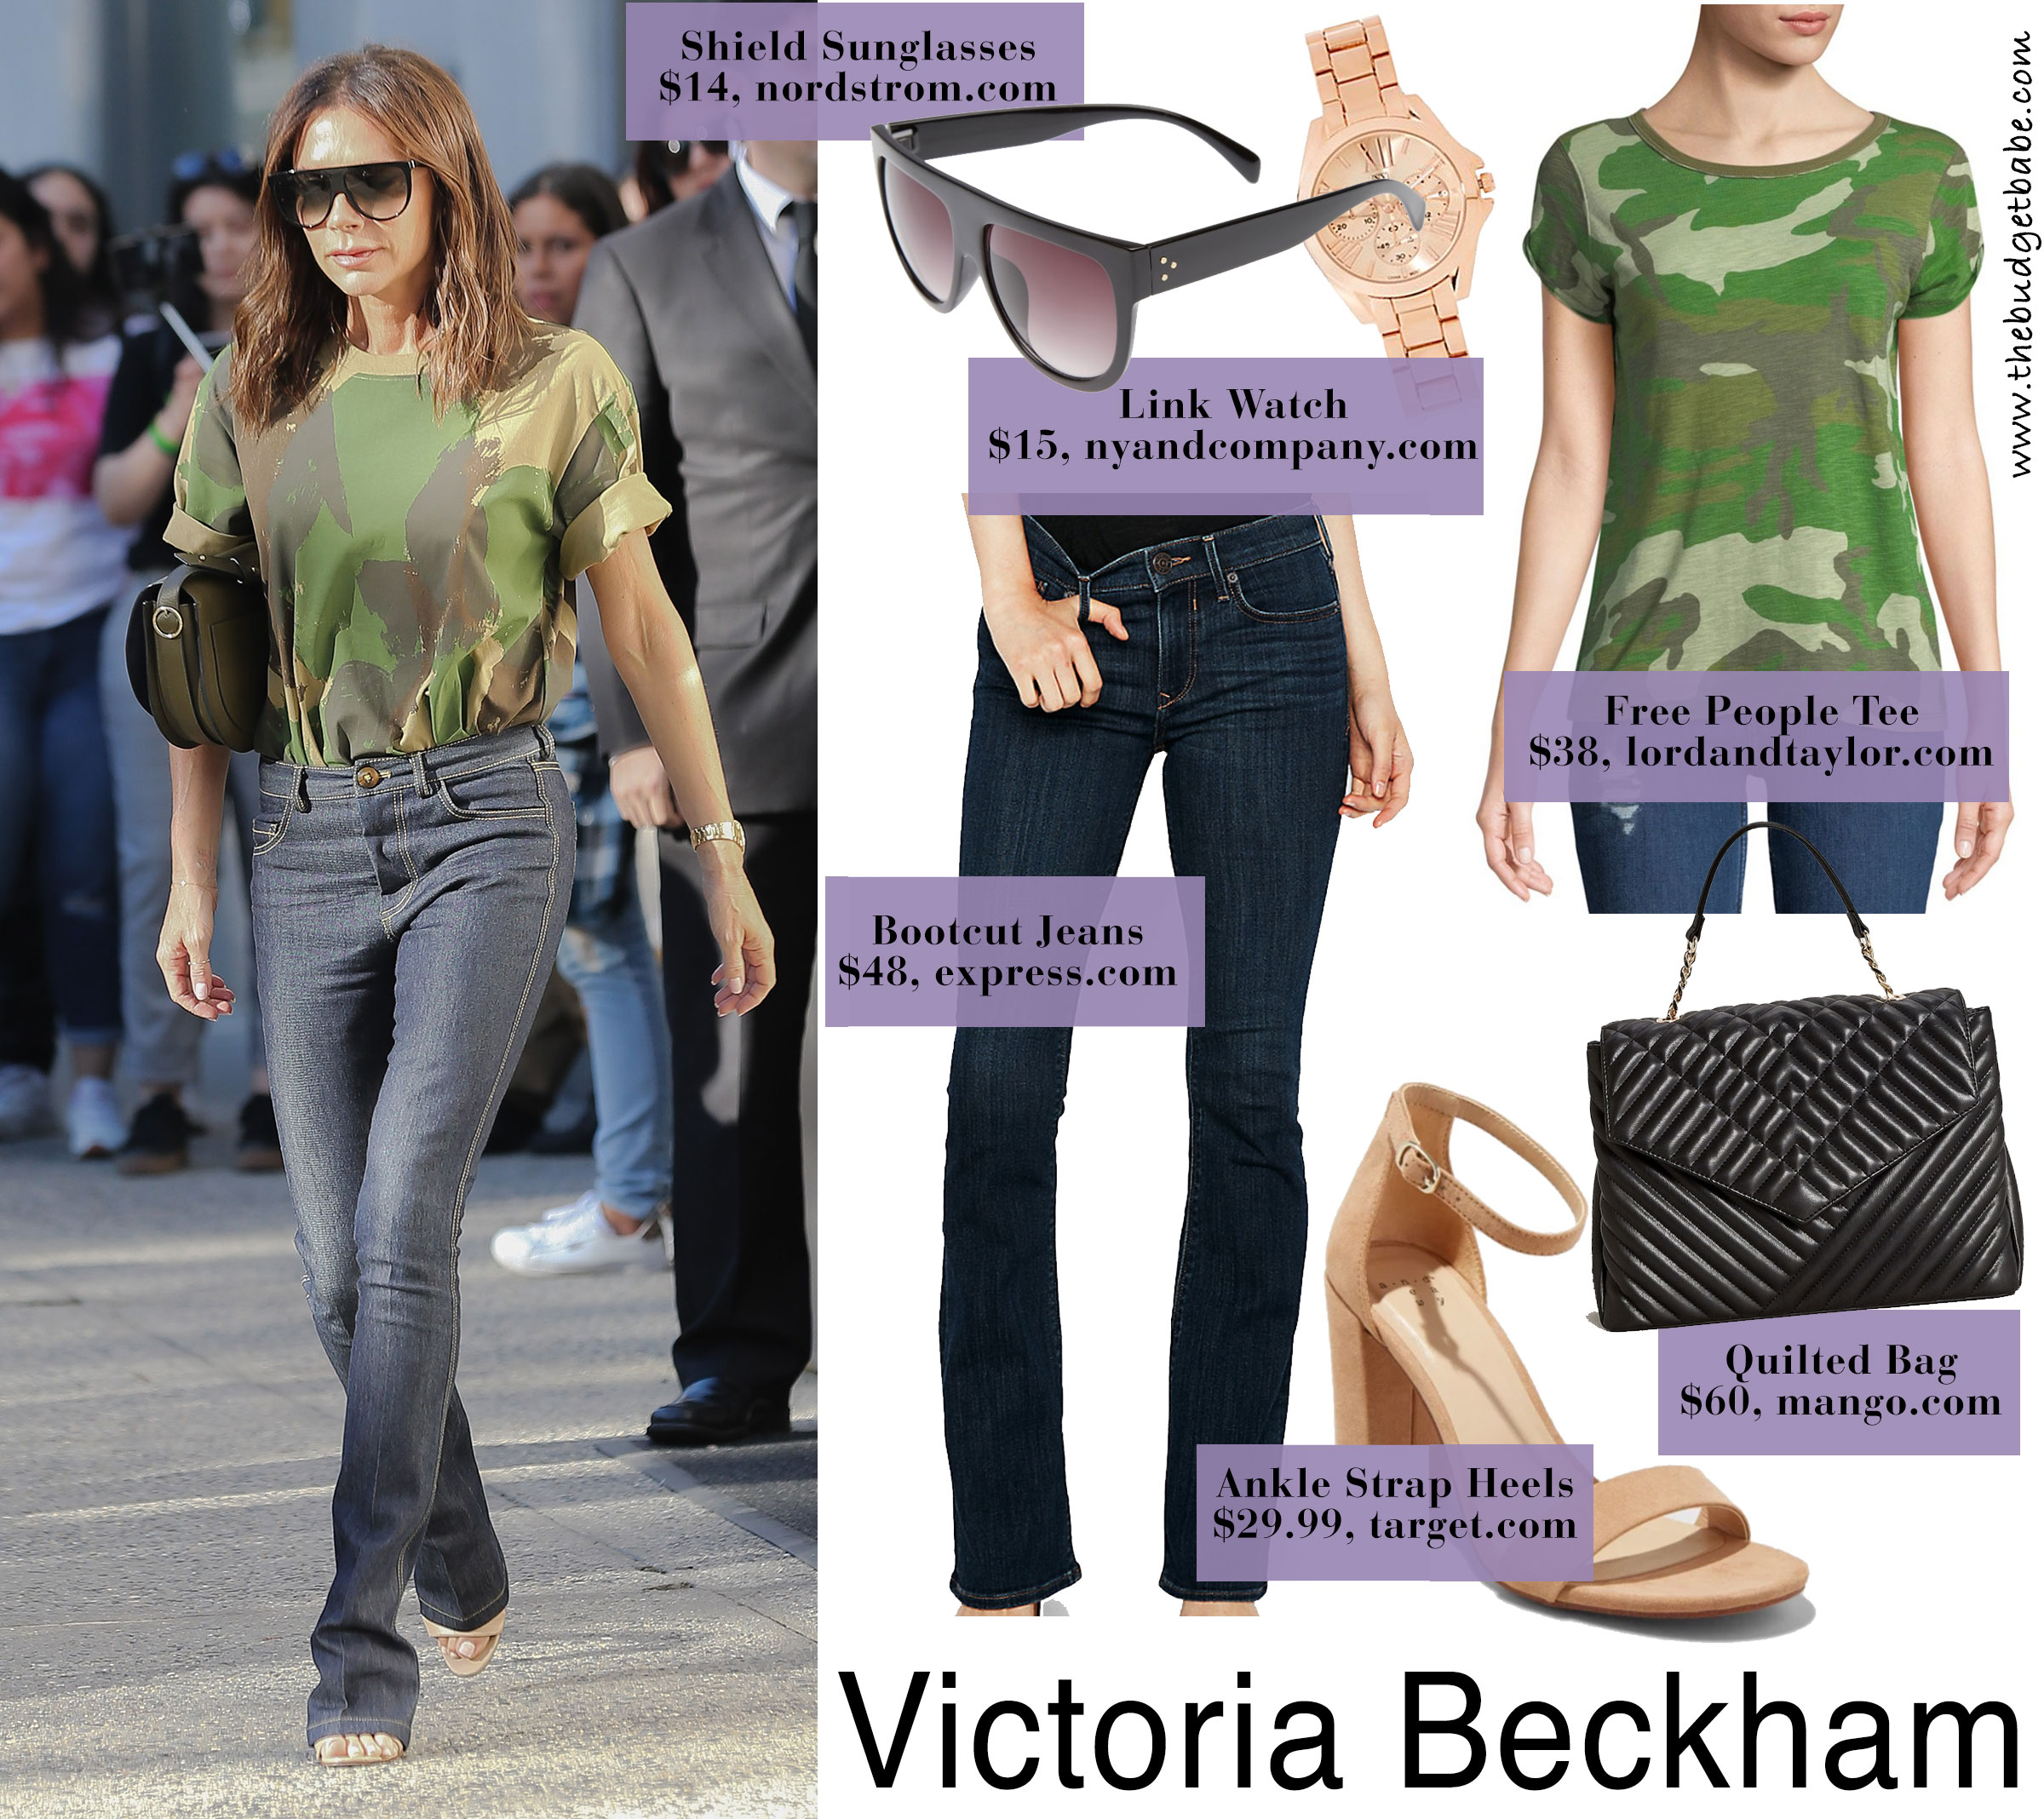 Victoria Beckham camo tee look for less